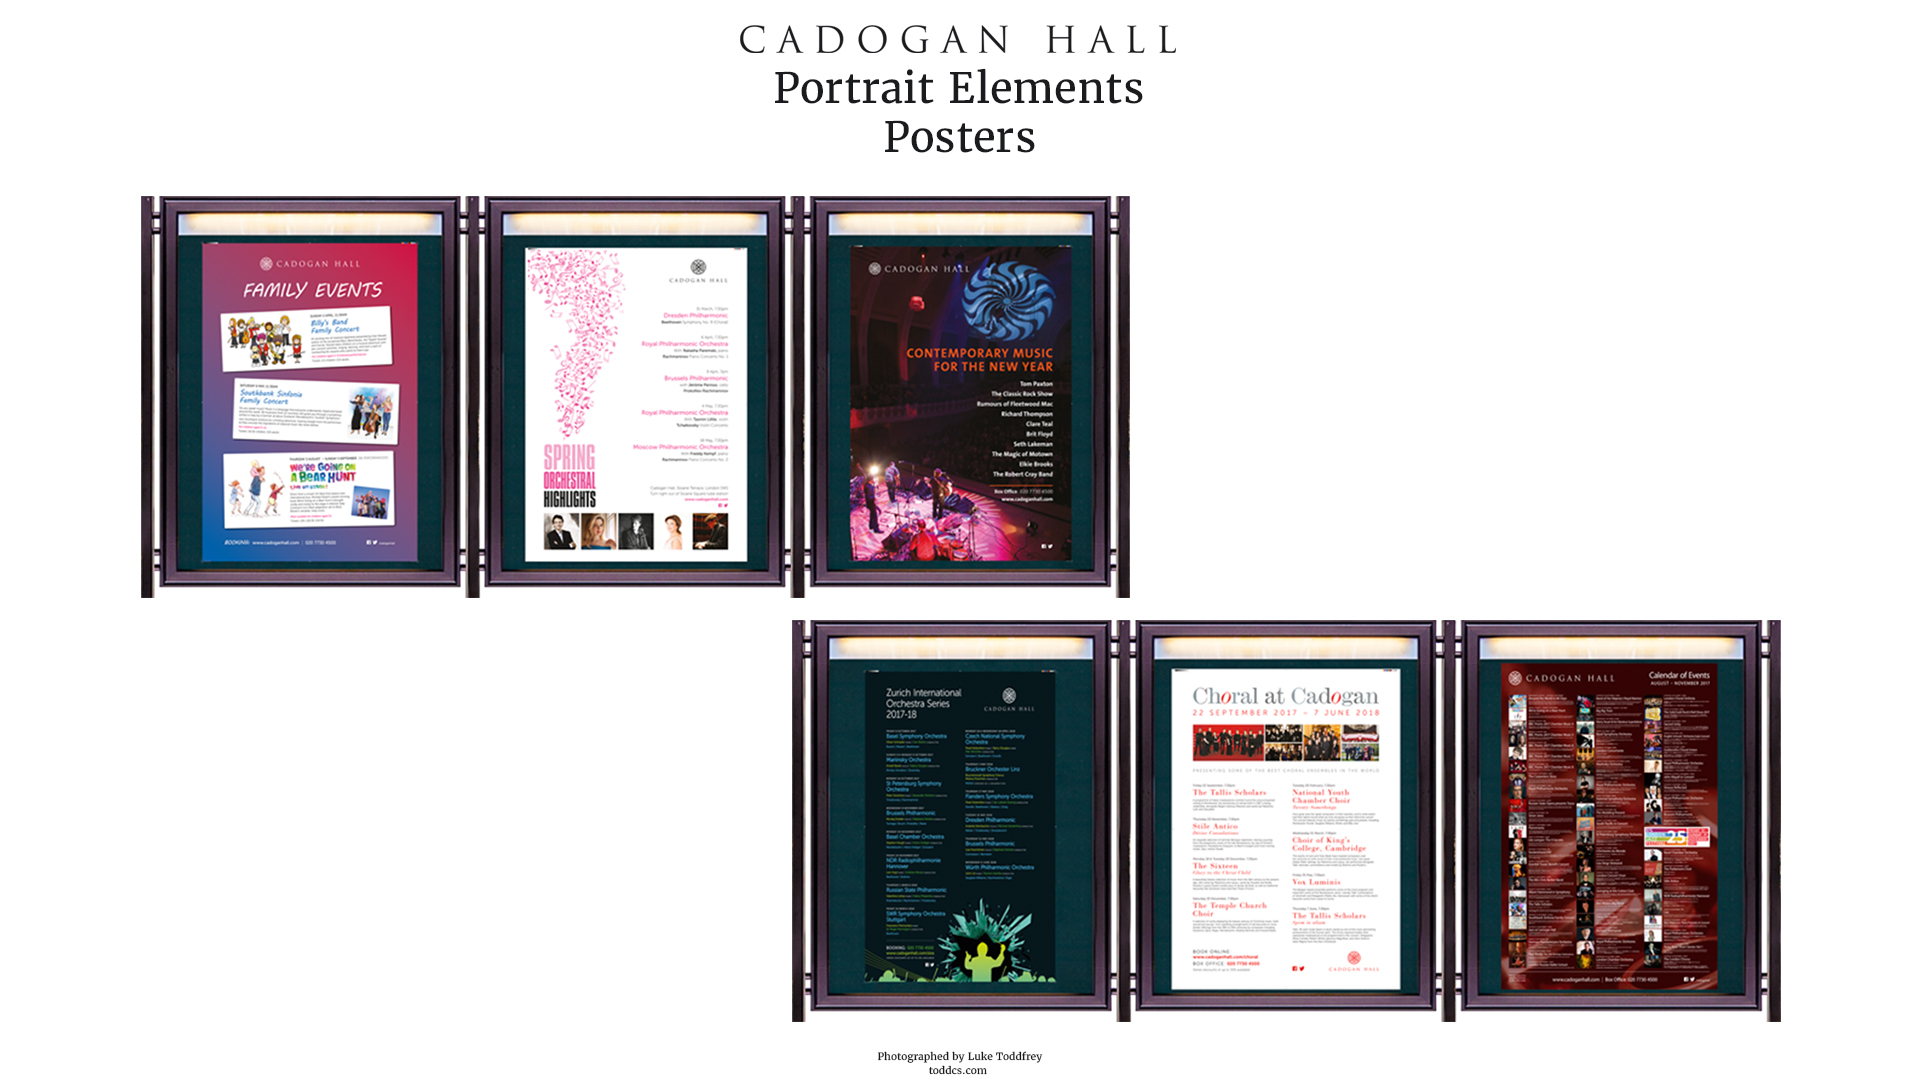 cadogan-hall---portrait_38365998615_o.jpg